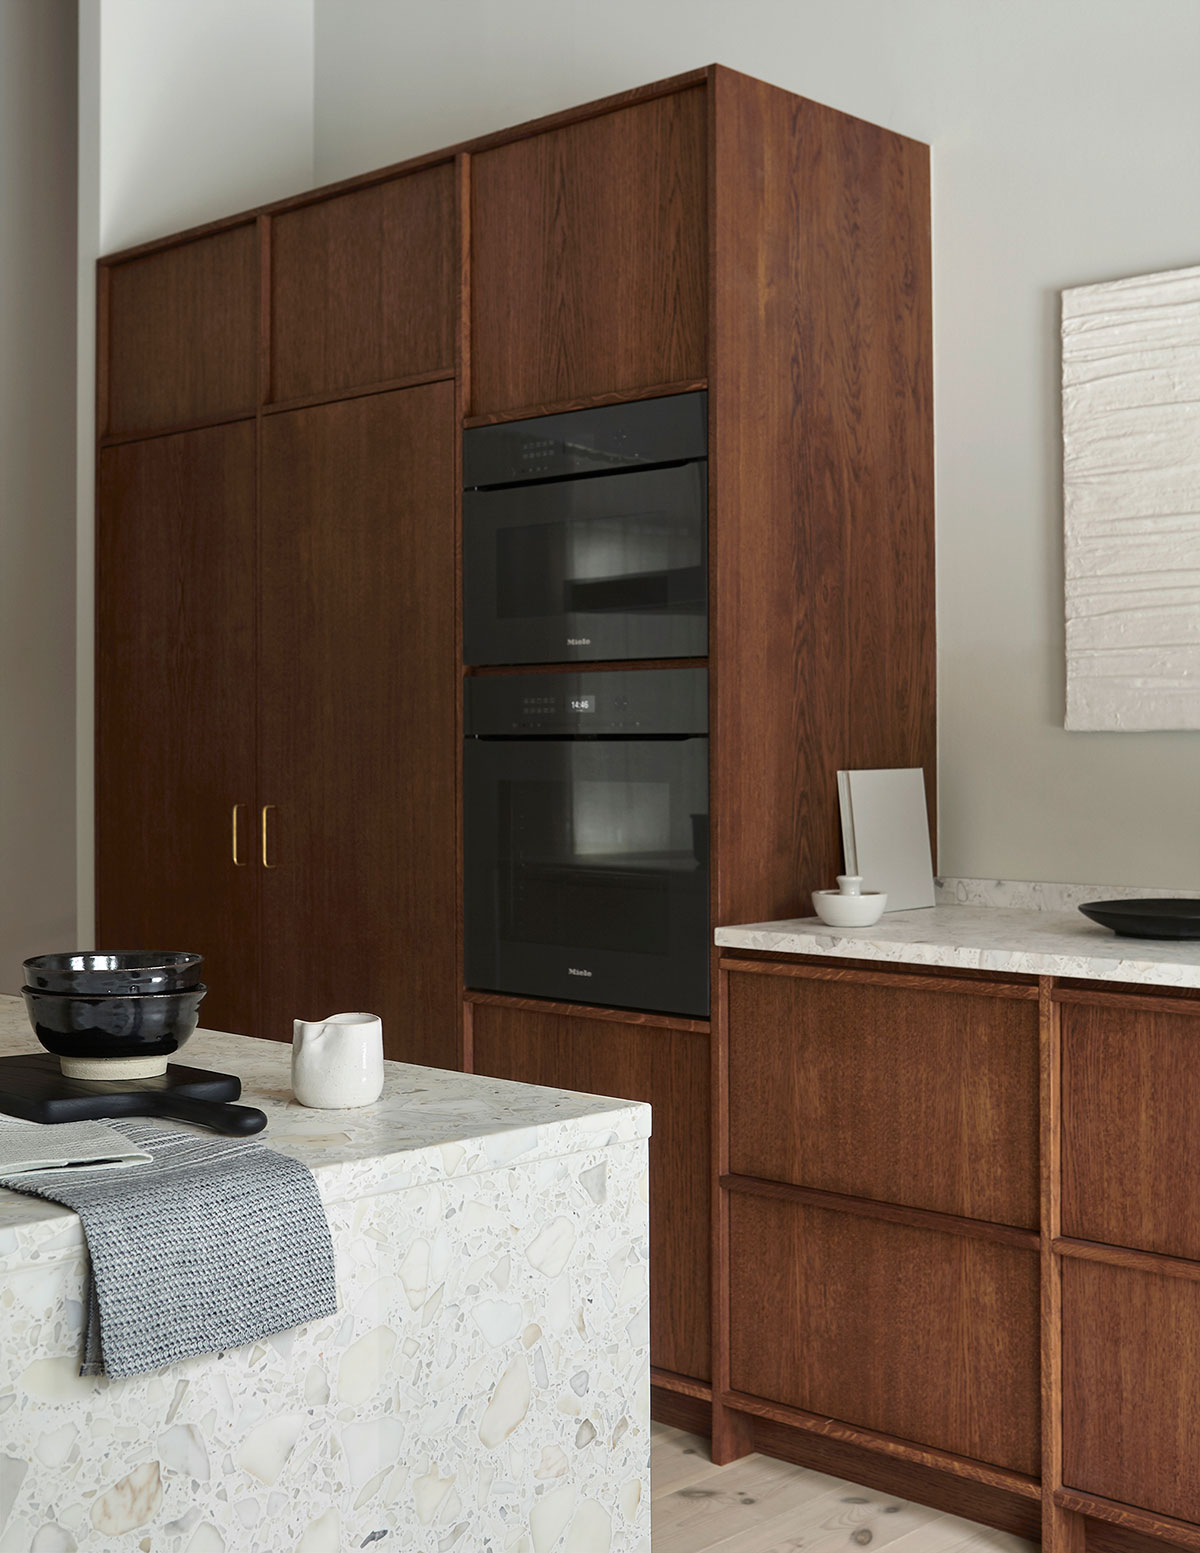 Minimalist, modern in frame oak kitchen with terrazzo countertop and Miele appliances